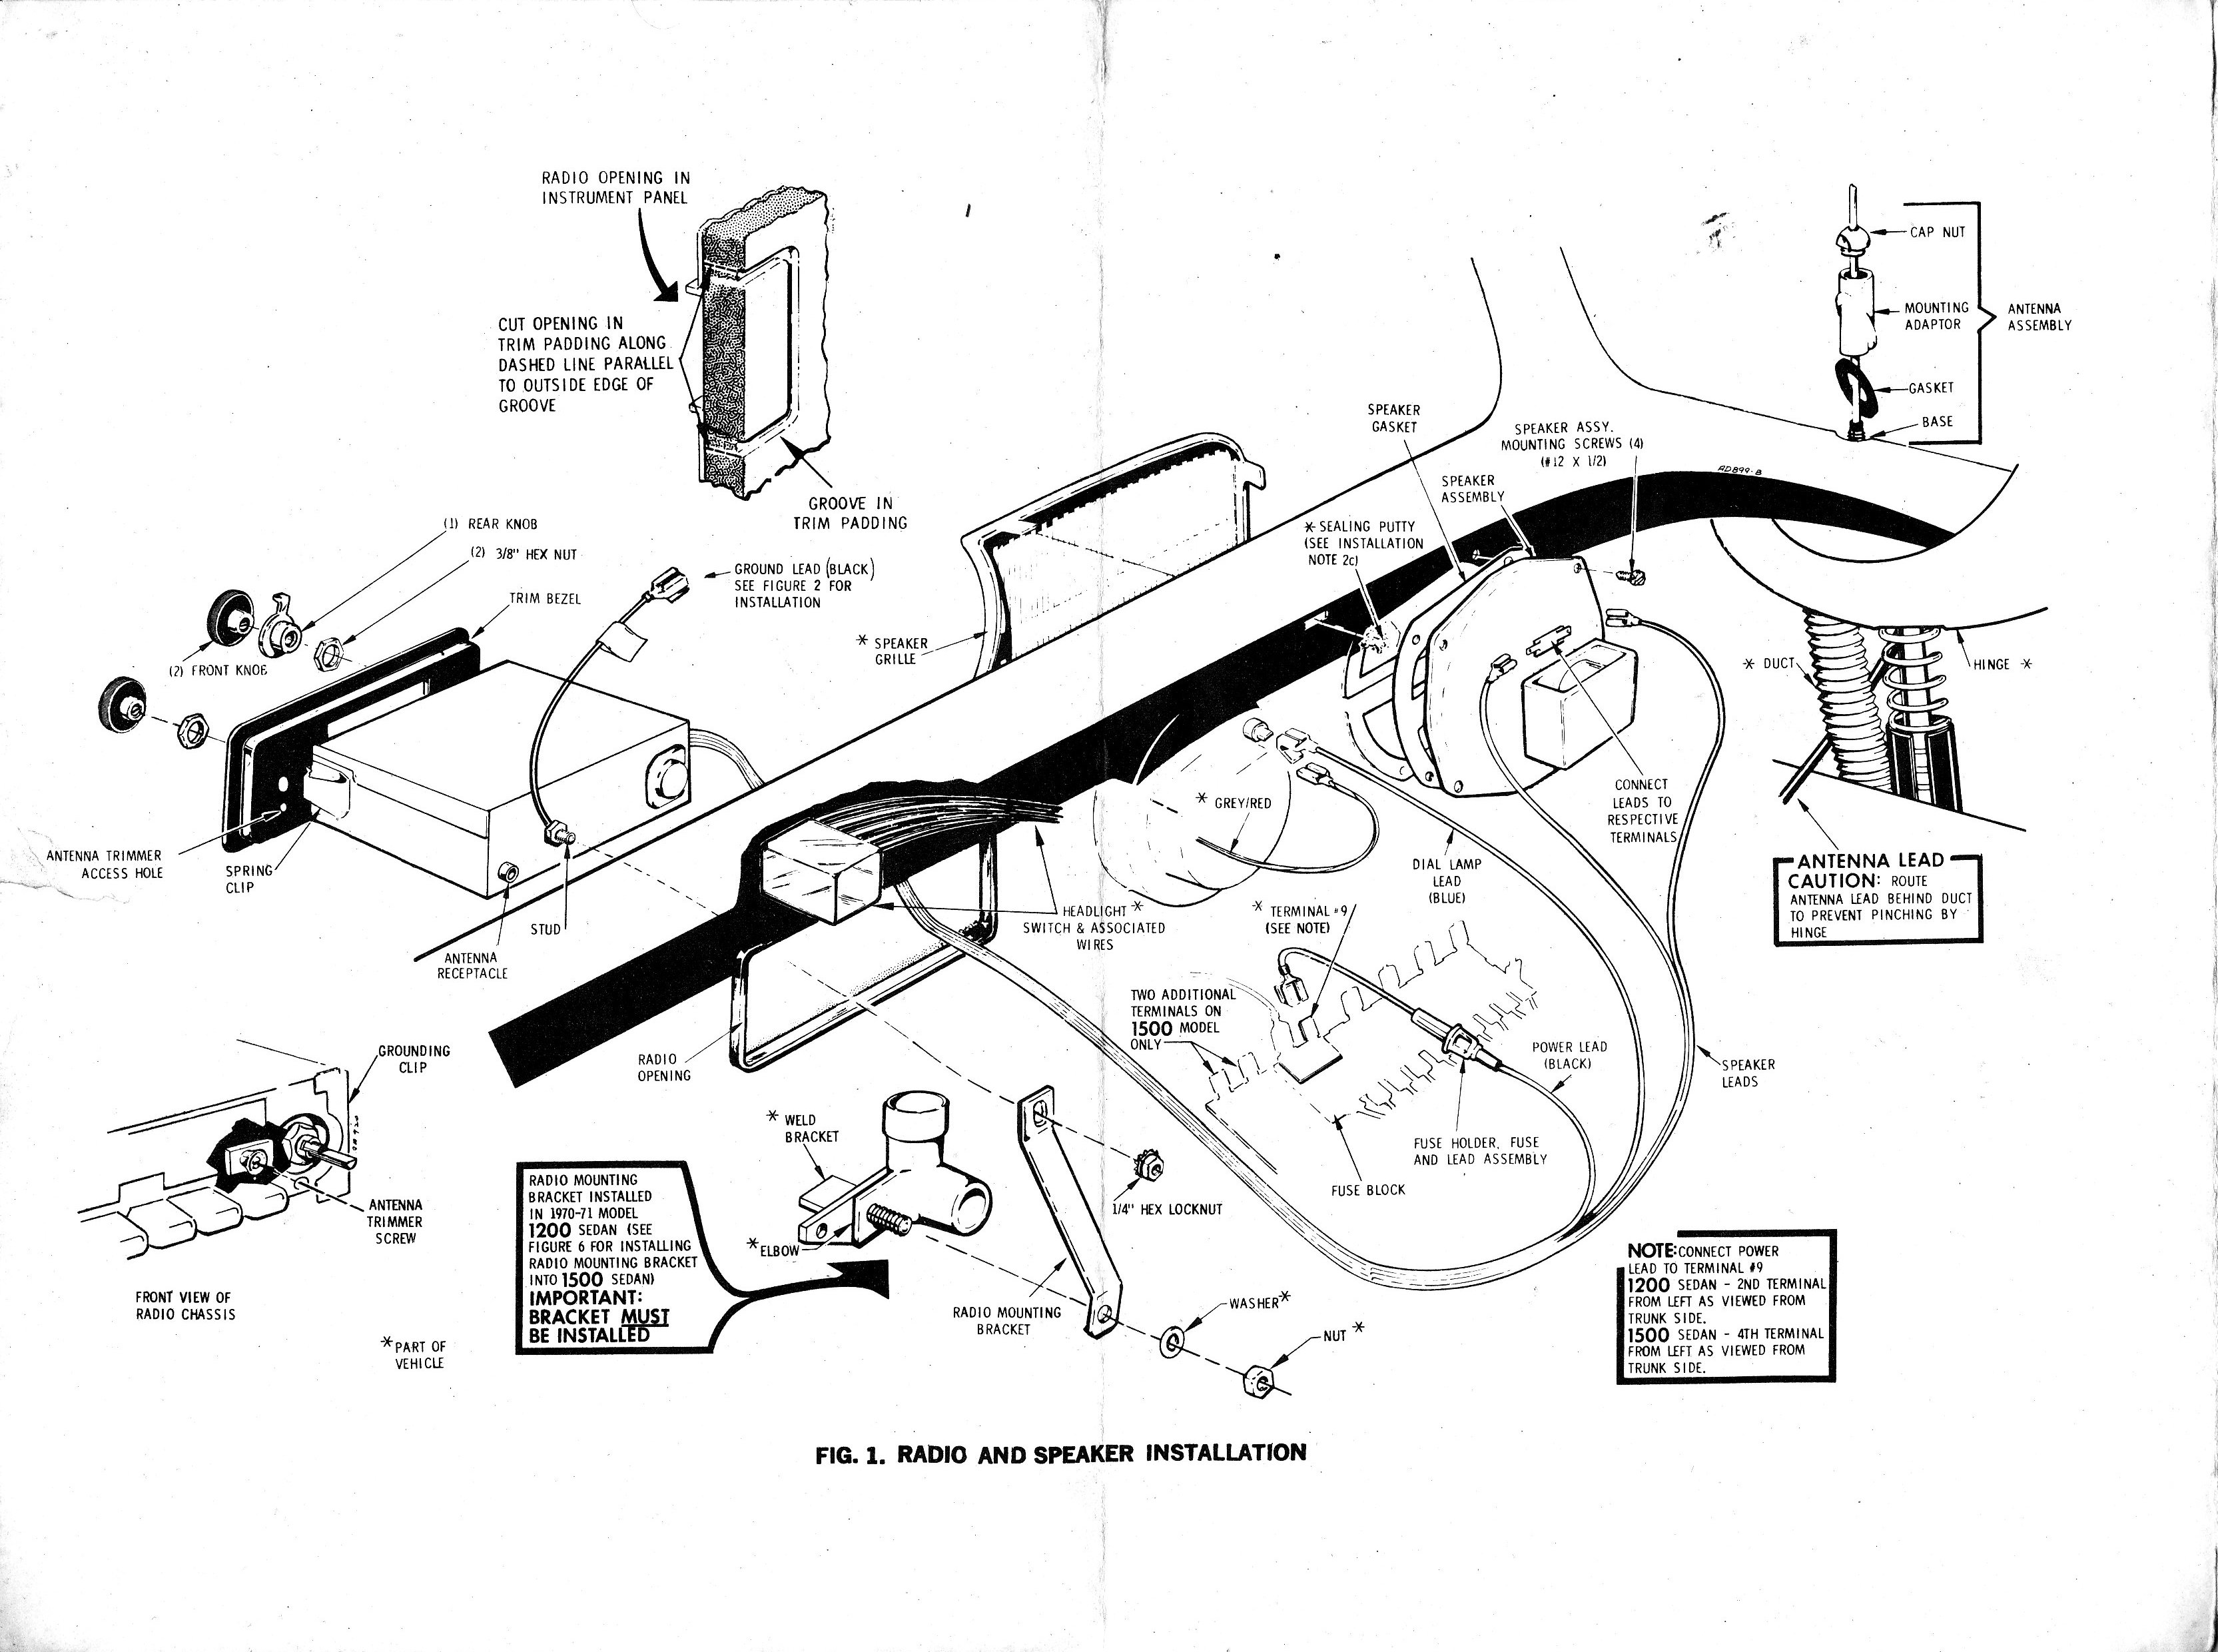 1968 Vw Beetle Wiring Diagram on 73 super bug engine